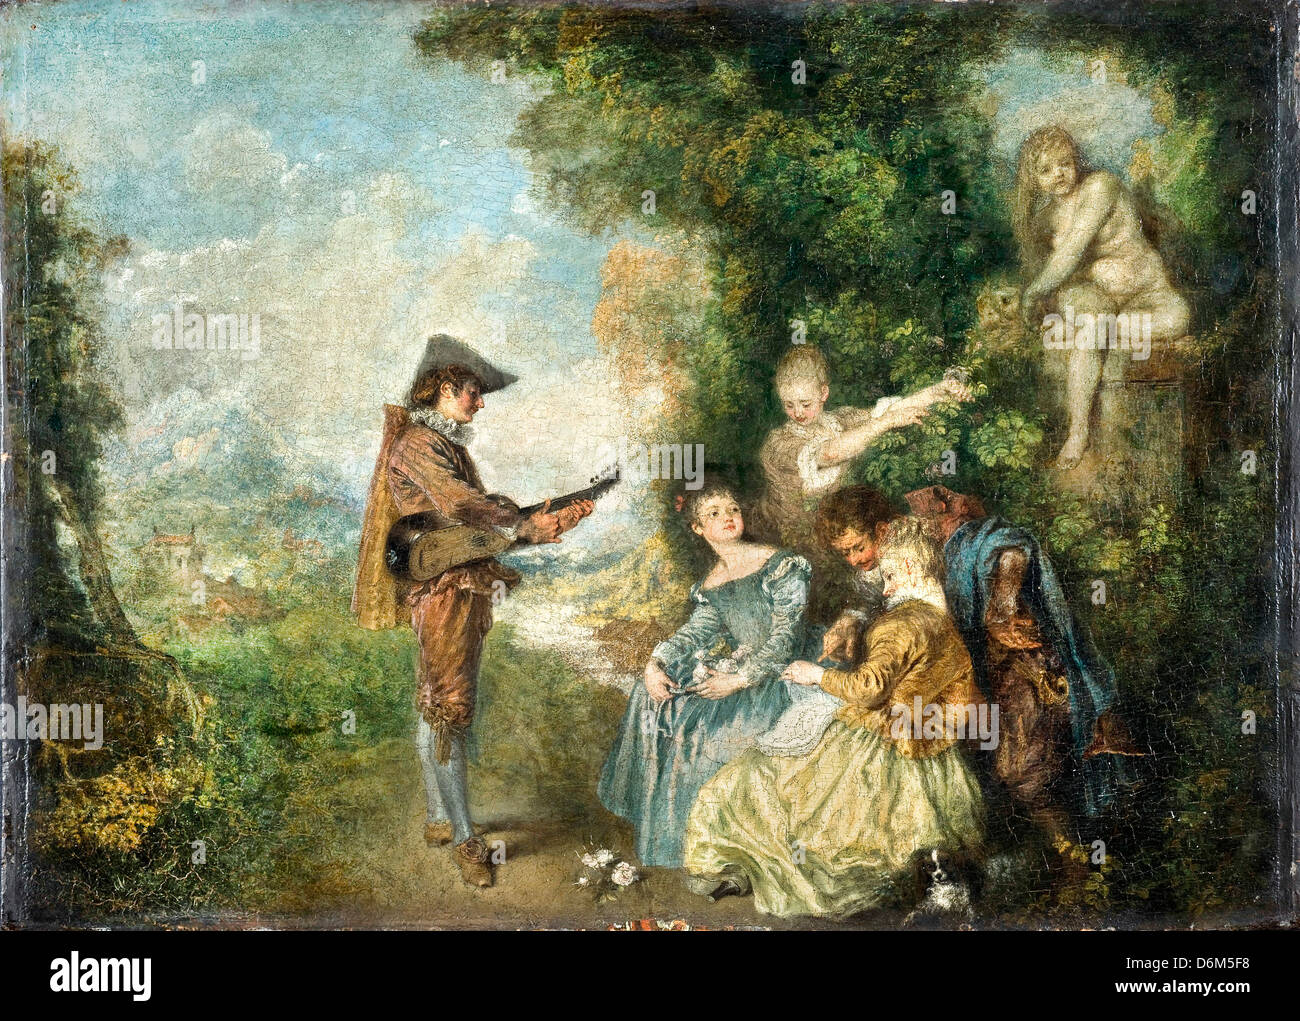 Antoine Watteau, The Love Lesson 1716-1717 Oil on canvas. Nationalmuseum, Stockholm, Sweden - Stock Image